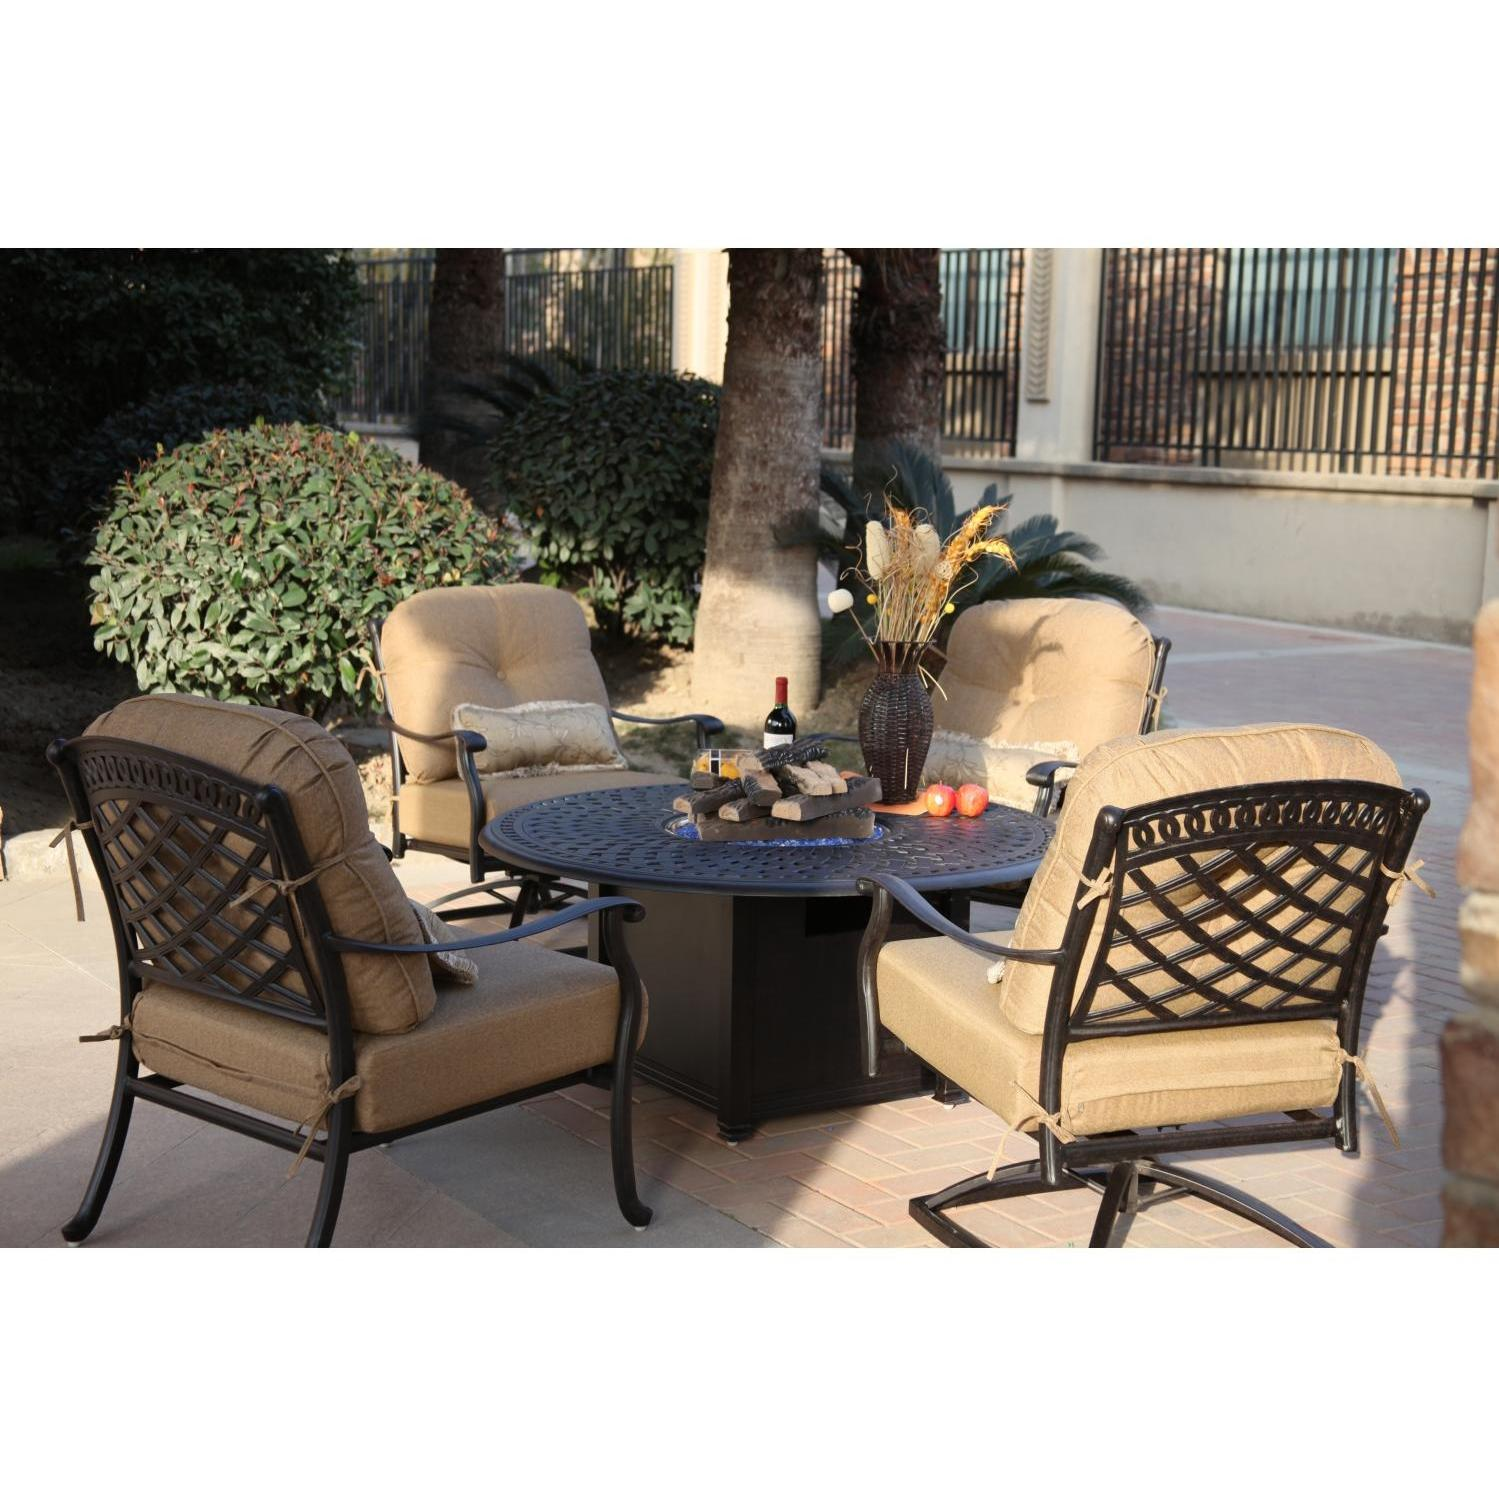 Darlee Sedona 5 Piece Cast Aluminum Patio Fire Pit Seating Set